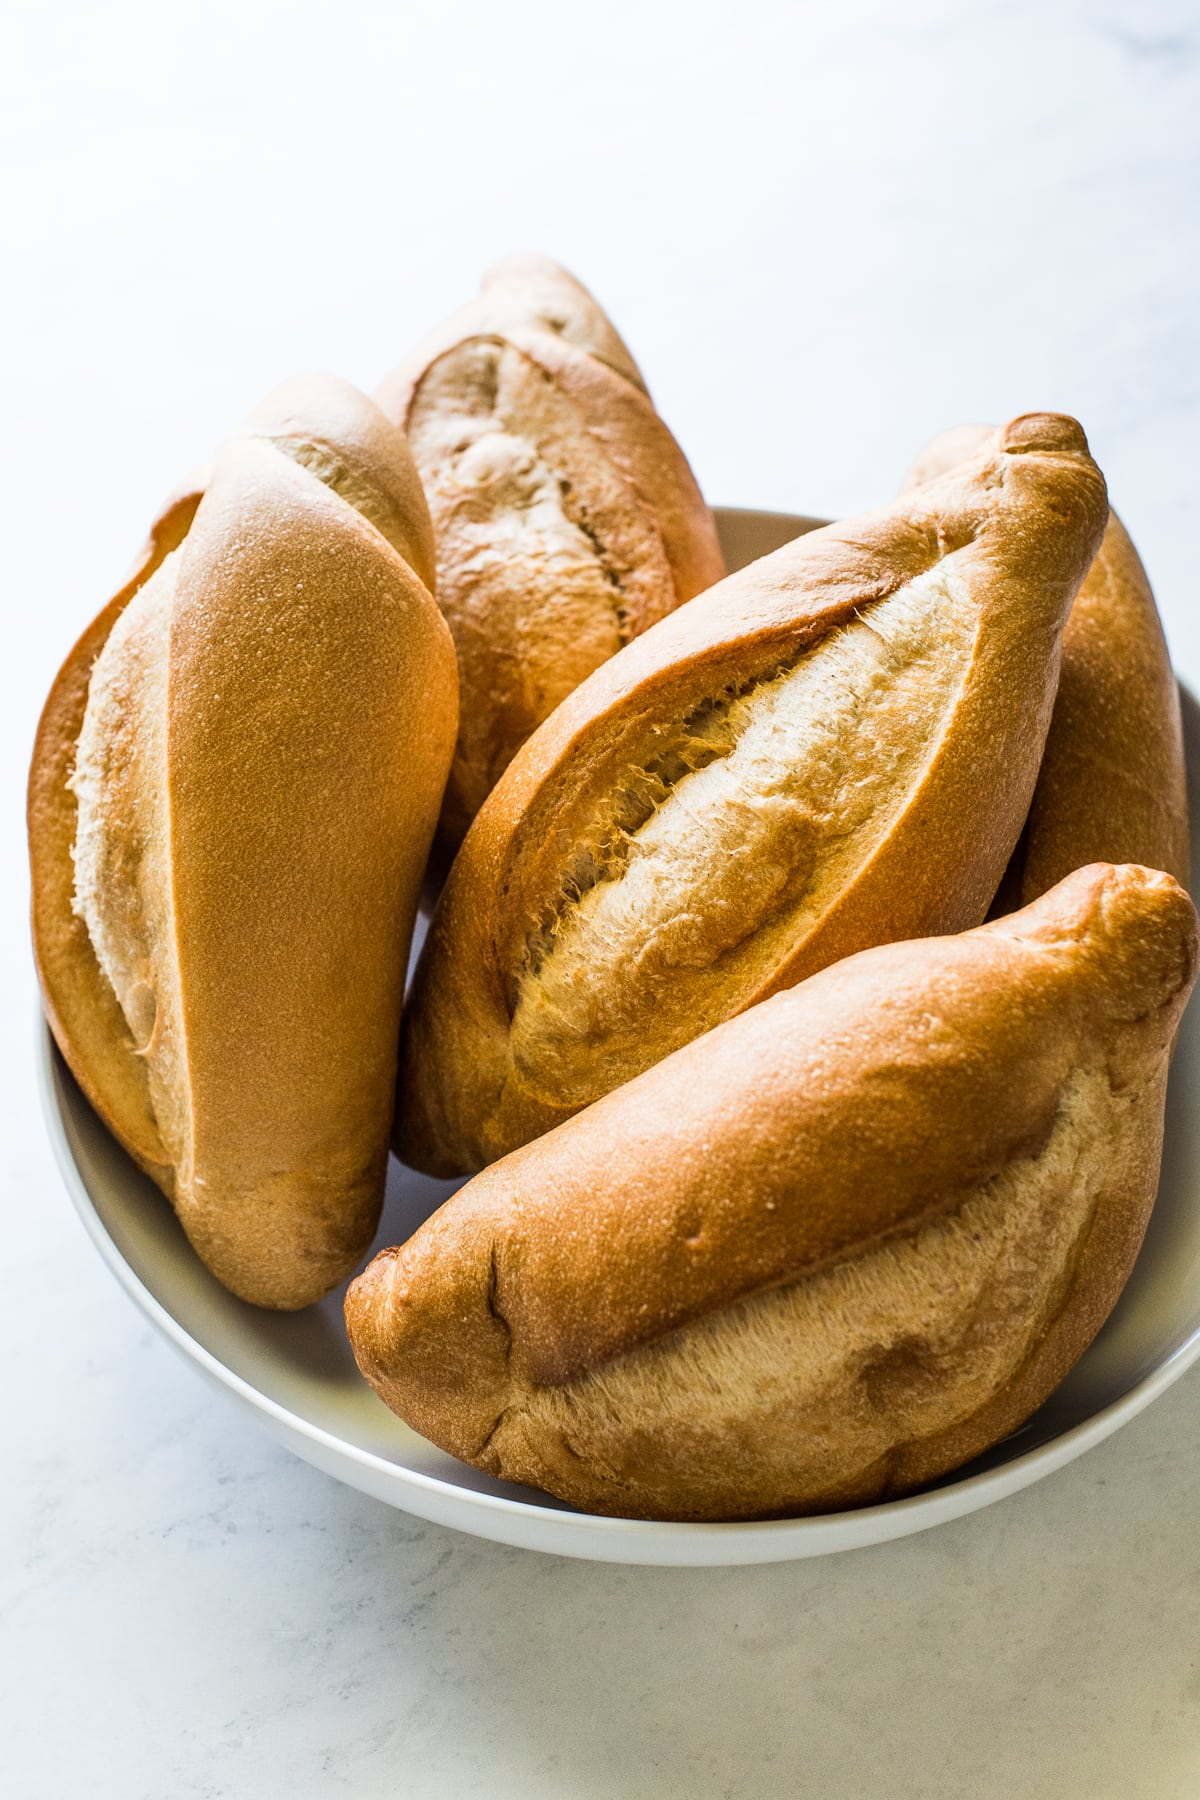 A basket full of bolillo bread.